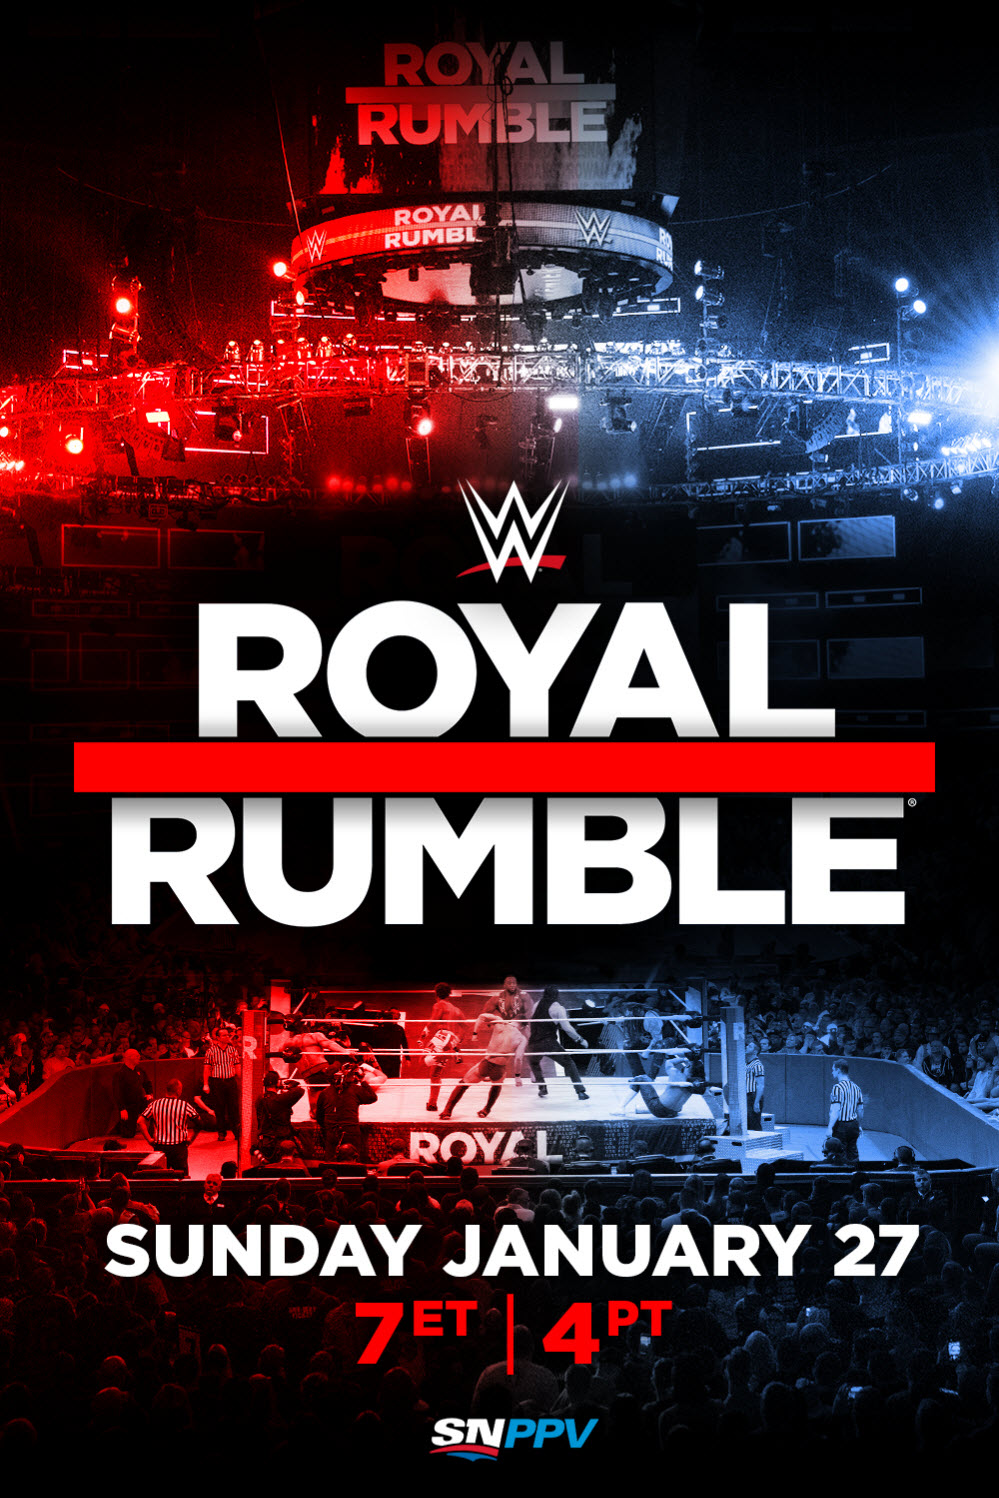 SN-PPV-Poster-2019-WWE-RoyalRumble.jpg